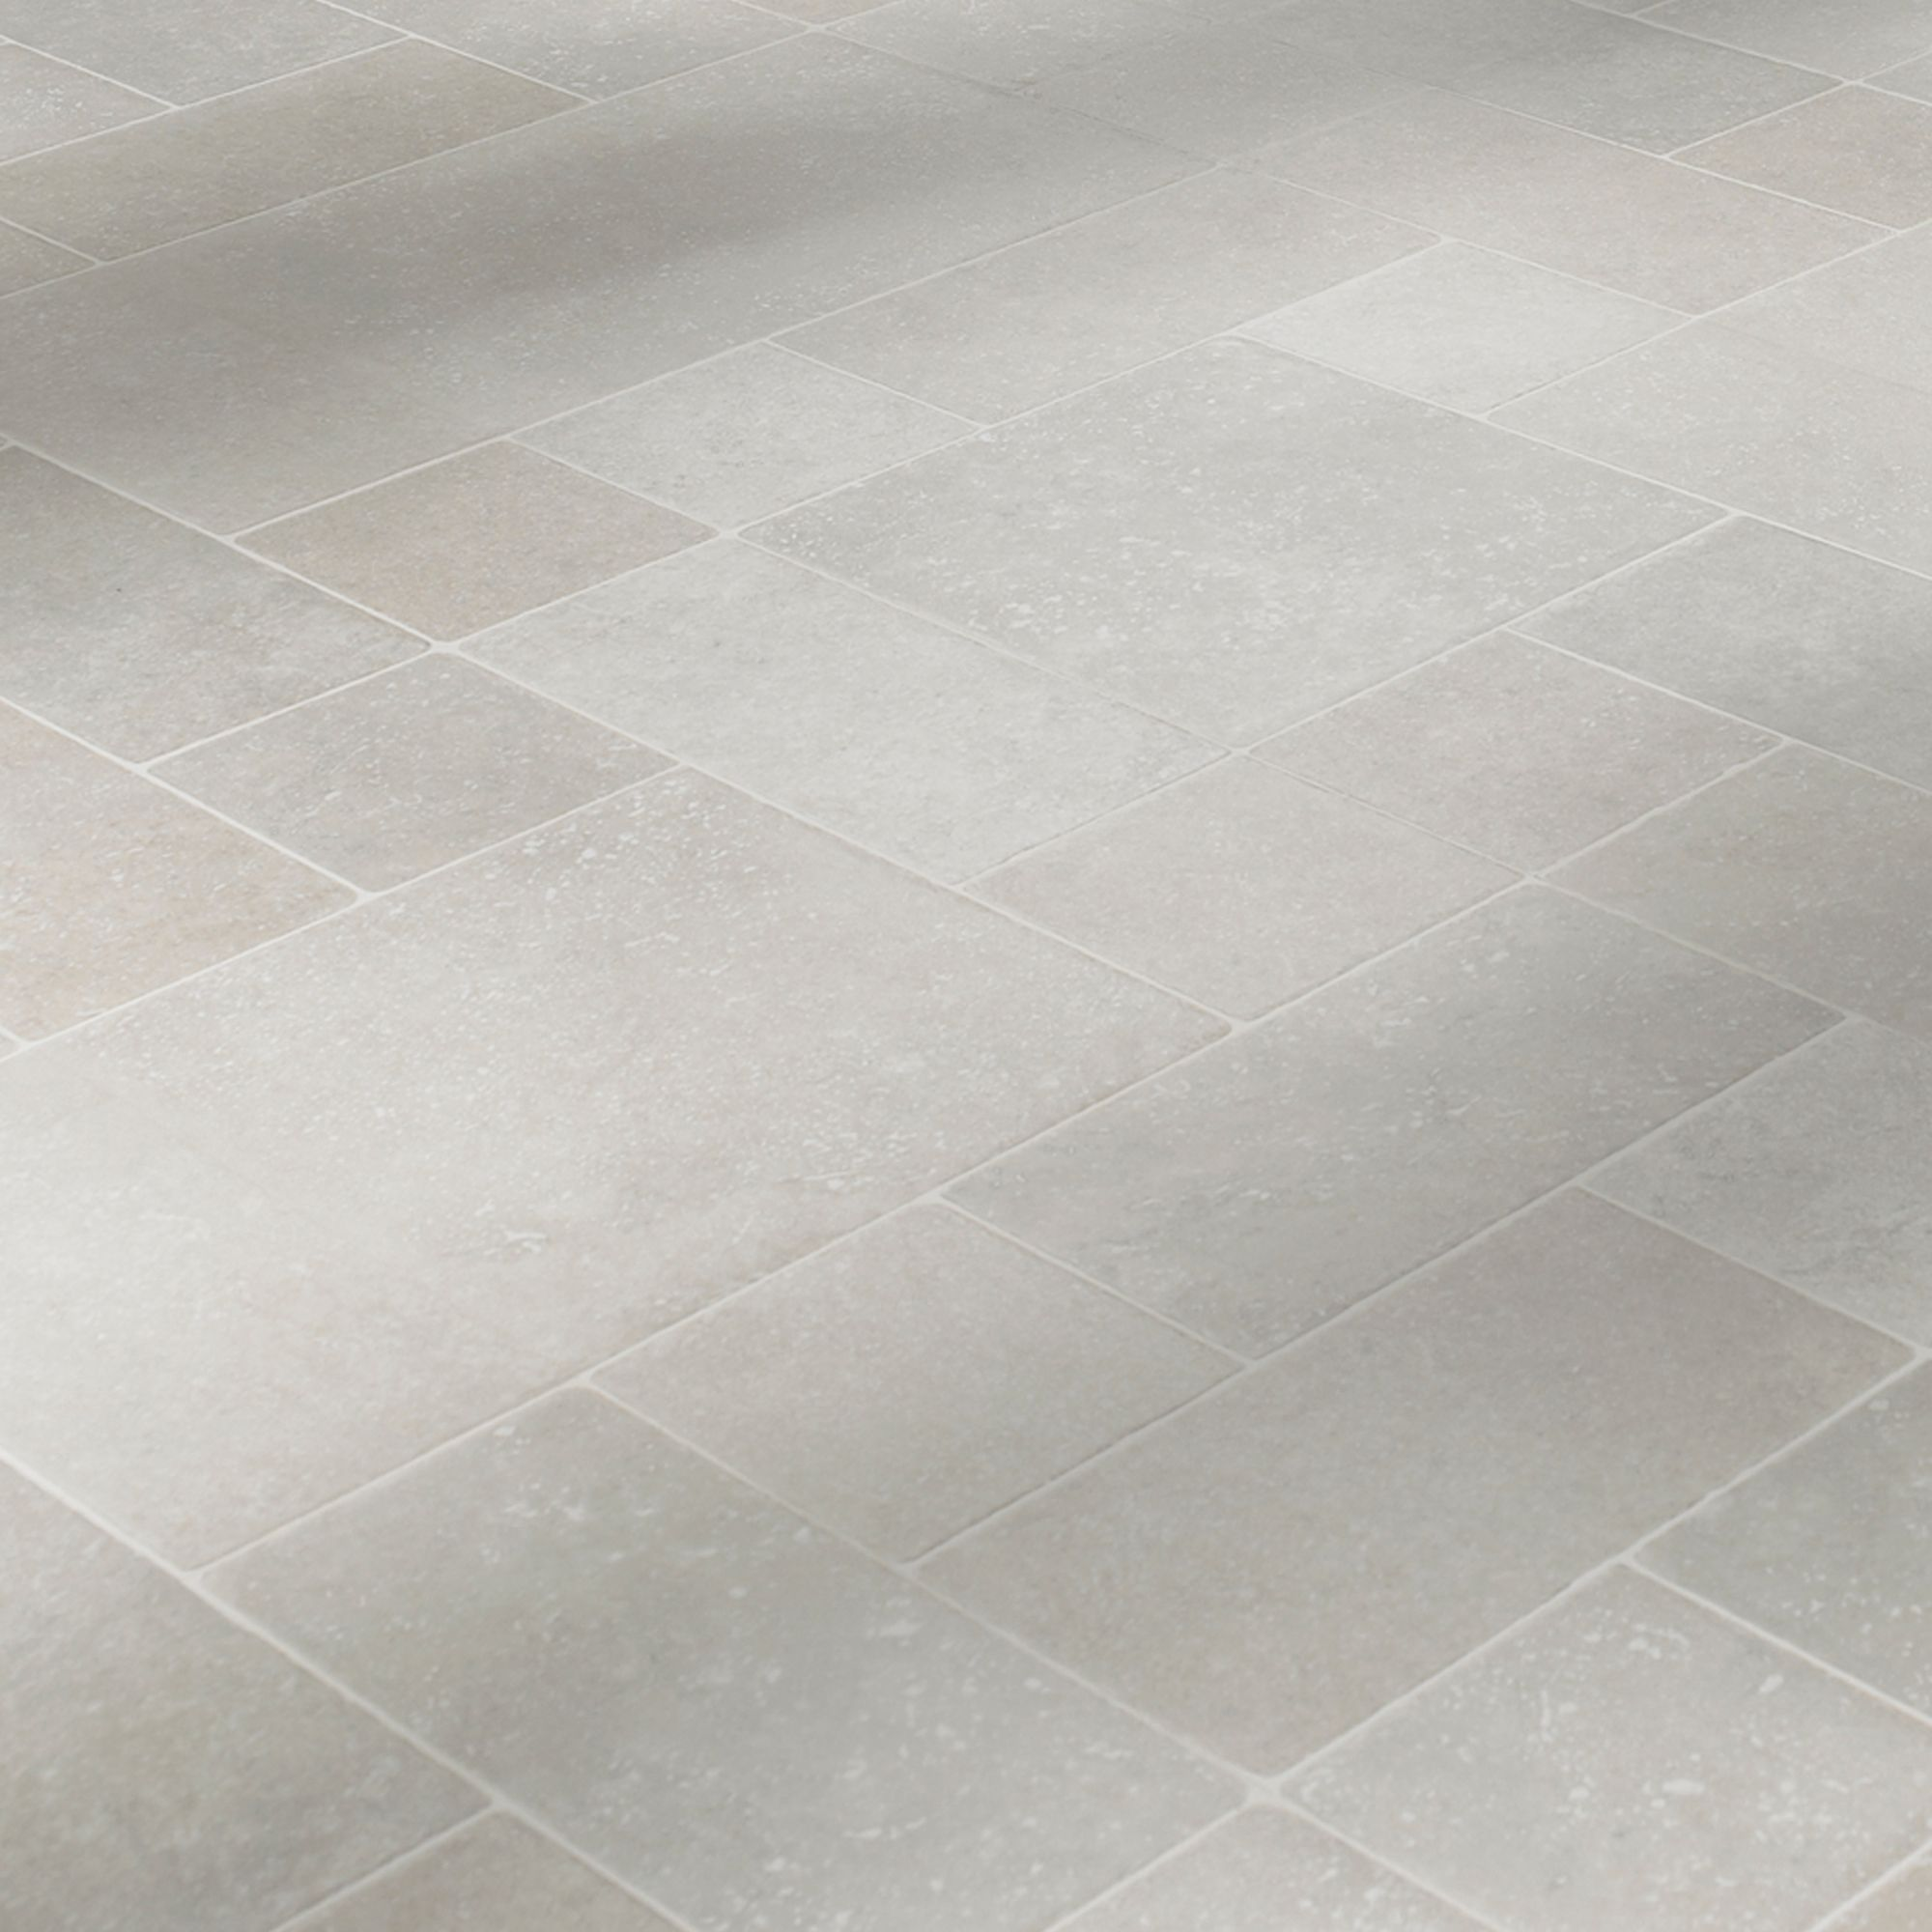 Barbarita random limestone tile effect laminate flooring 186 m barbarita grey limestone effect laminate flooring 186 m pack departments diy at bq limestone flooringflooring tileskitchen dailygadgetfo Image collections